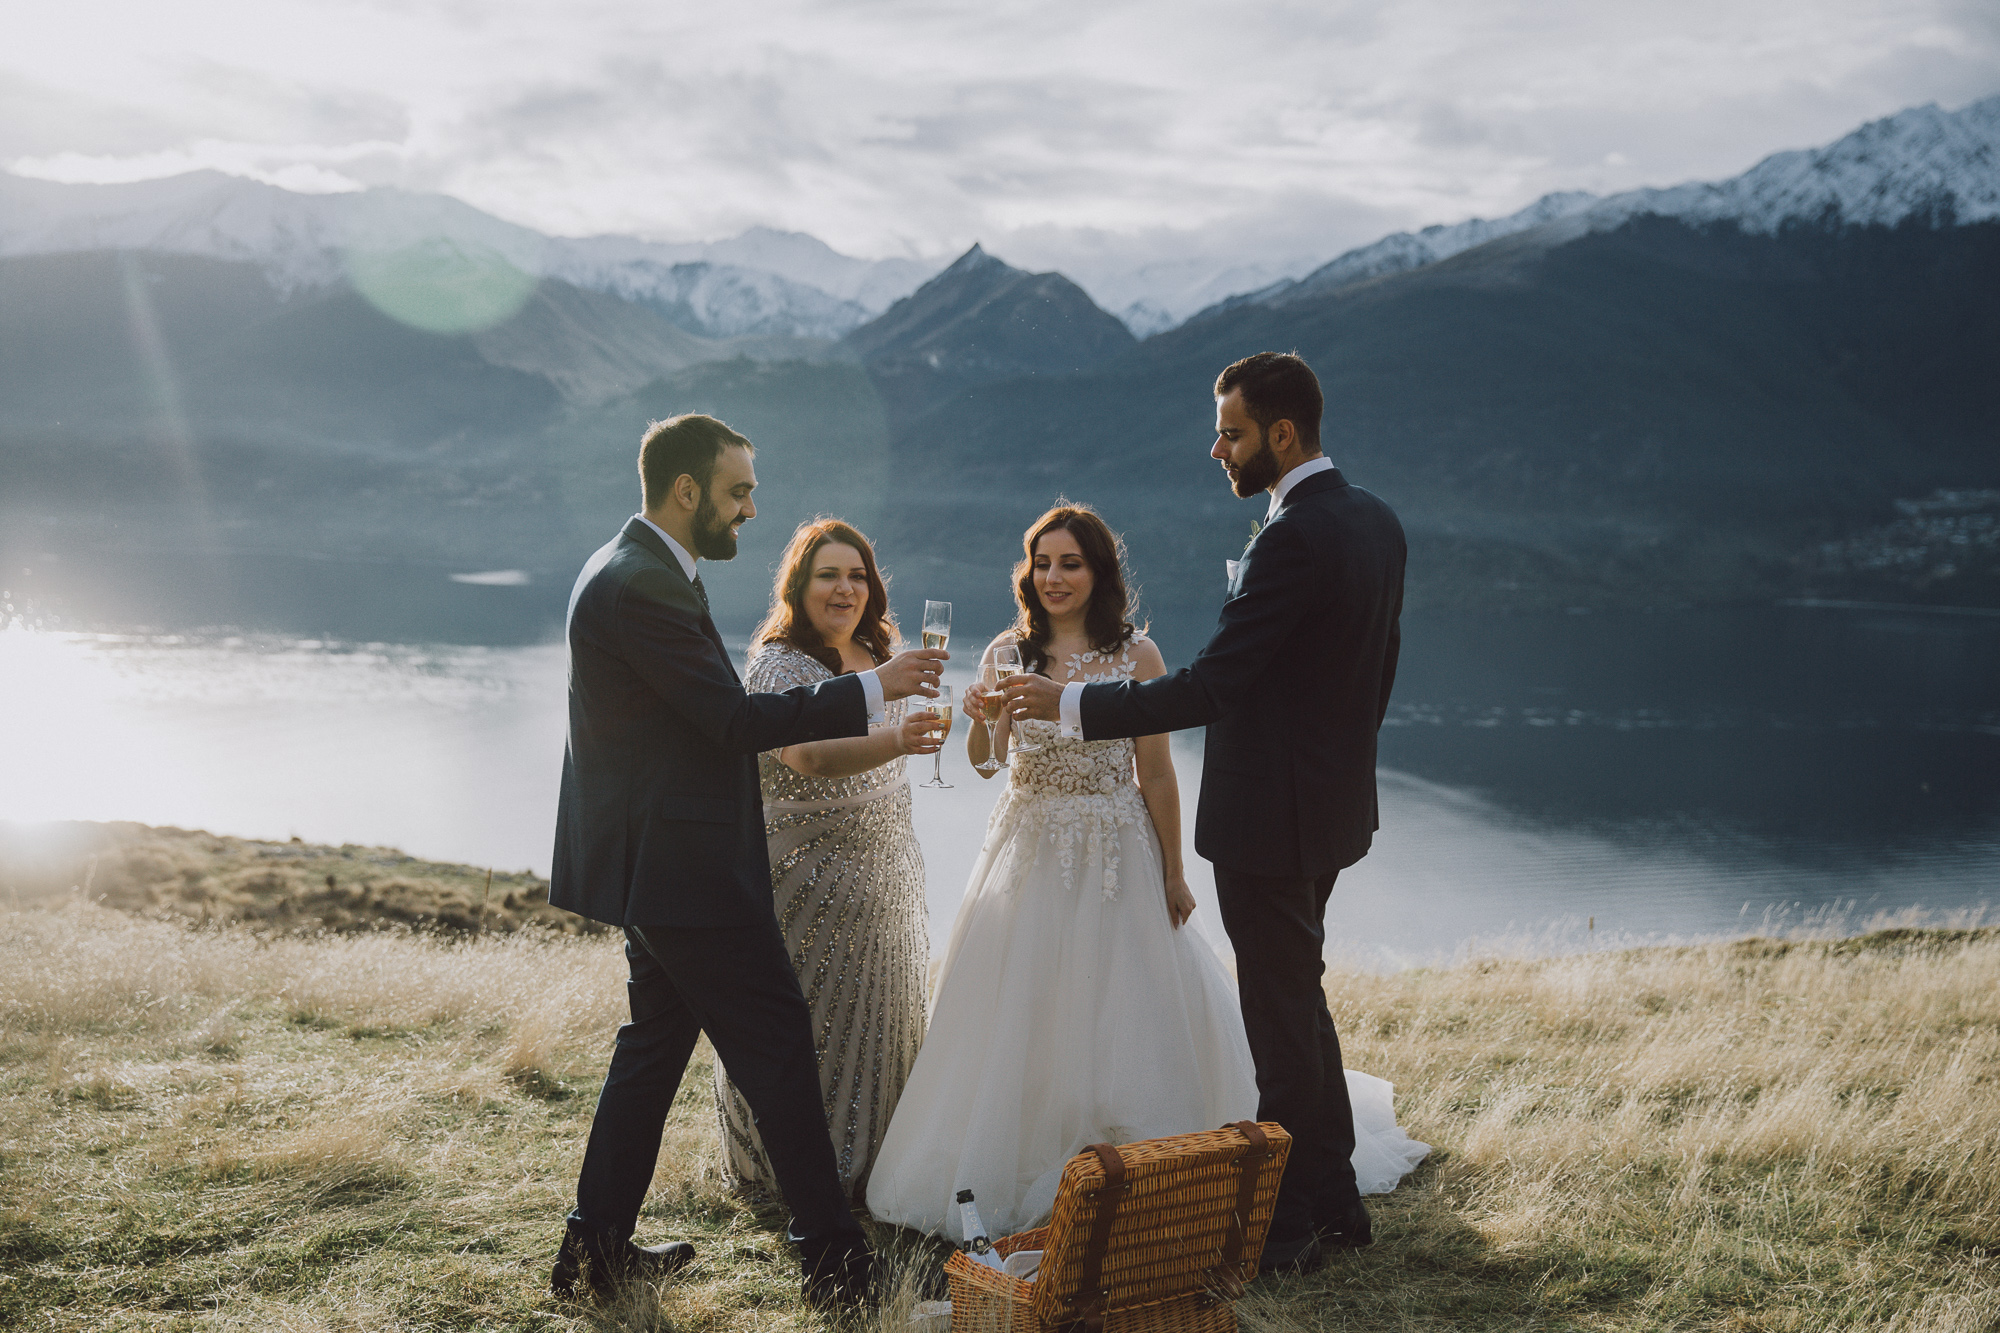 Queenstown Heli Wedding Planning for Mountaintop Photos at Cecil Peak